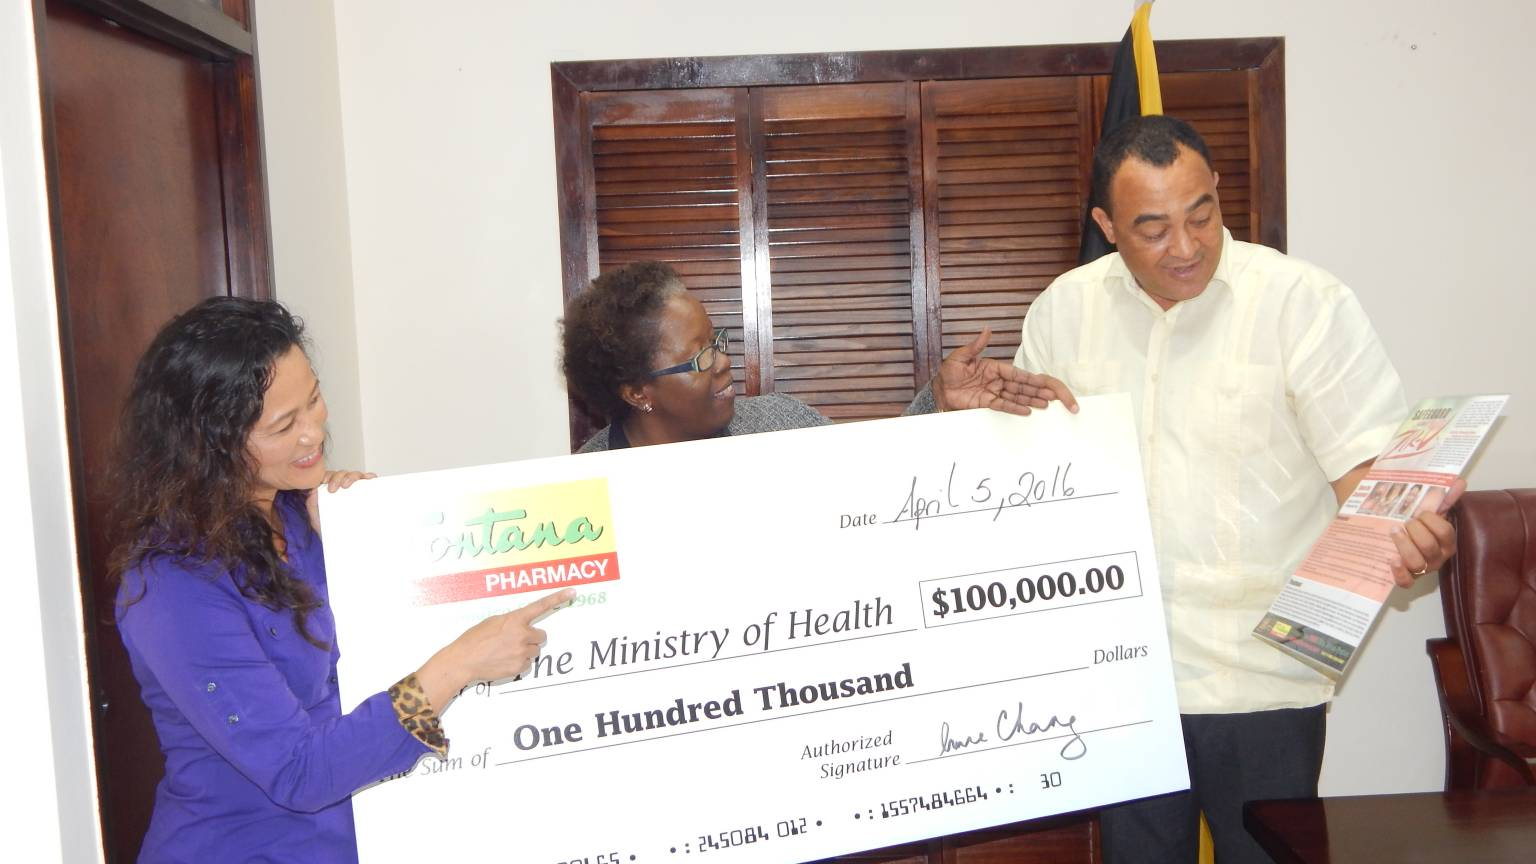 Zika Prevalence In Jamaica Fontana Pharmacy Donates 100 000 To Assist Zika Fight